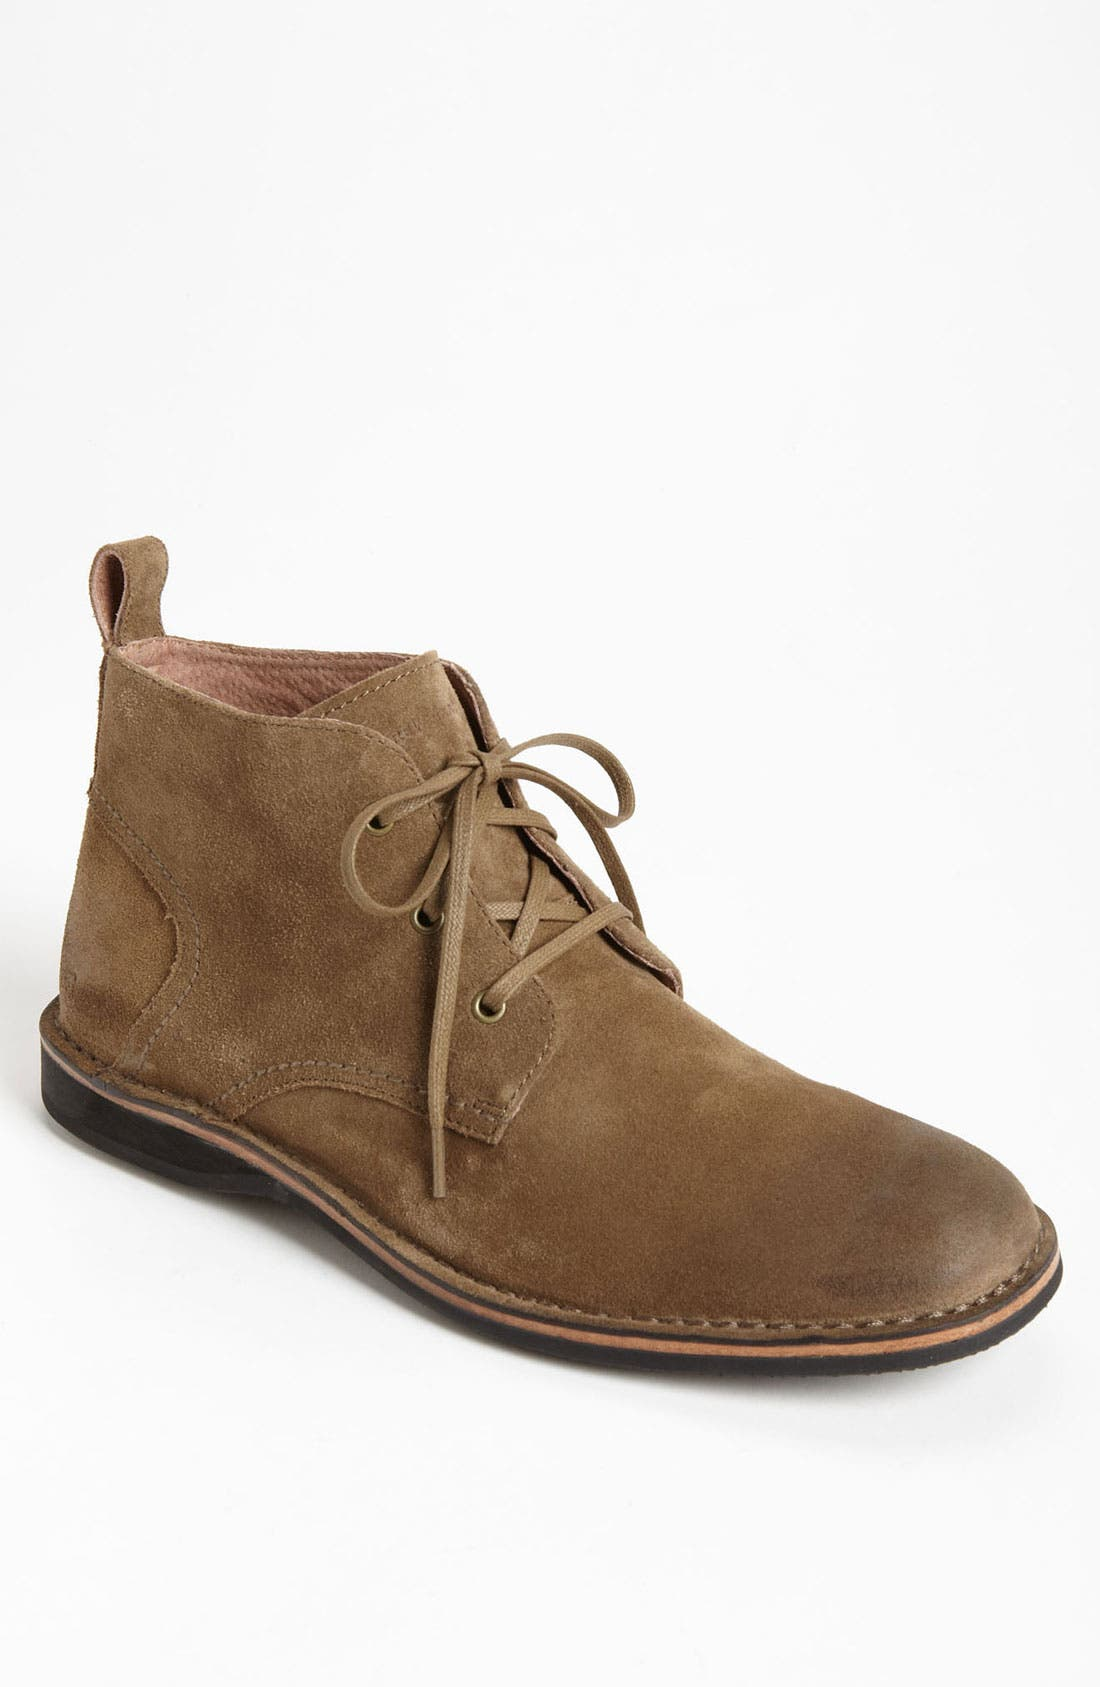 Main Image - Andrew Marc 'Dorchester' Chukka Boot (Men)